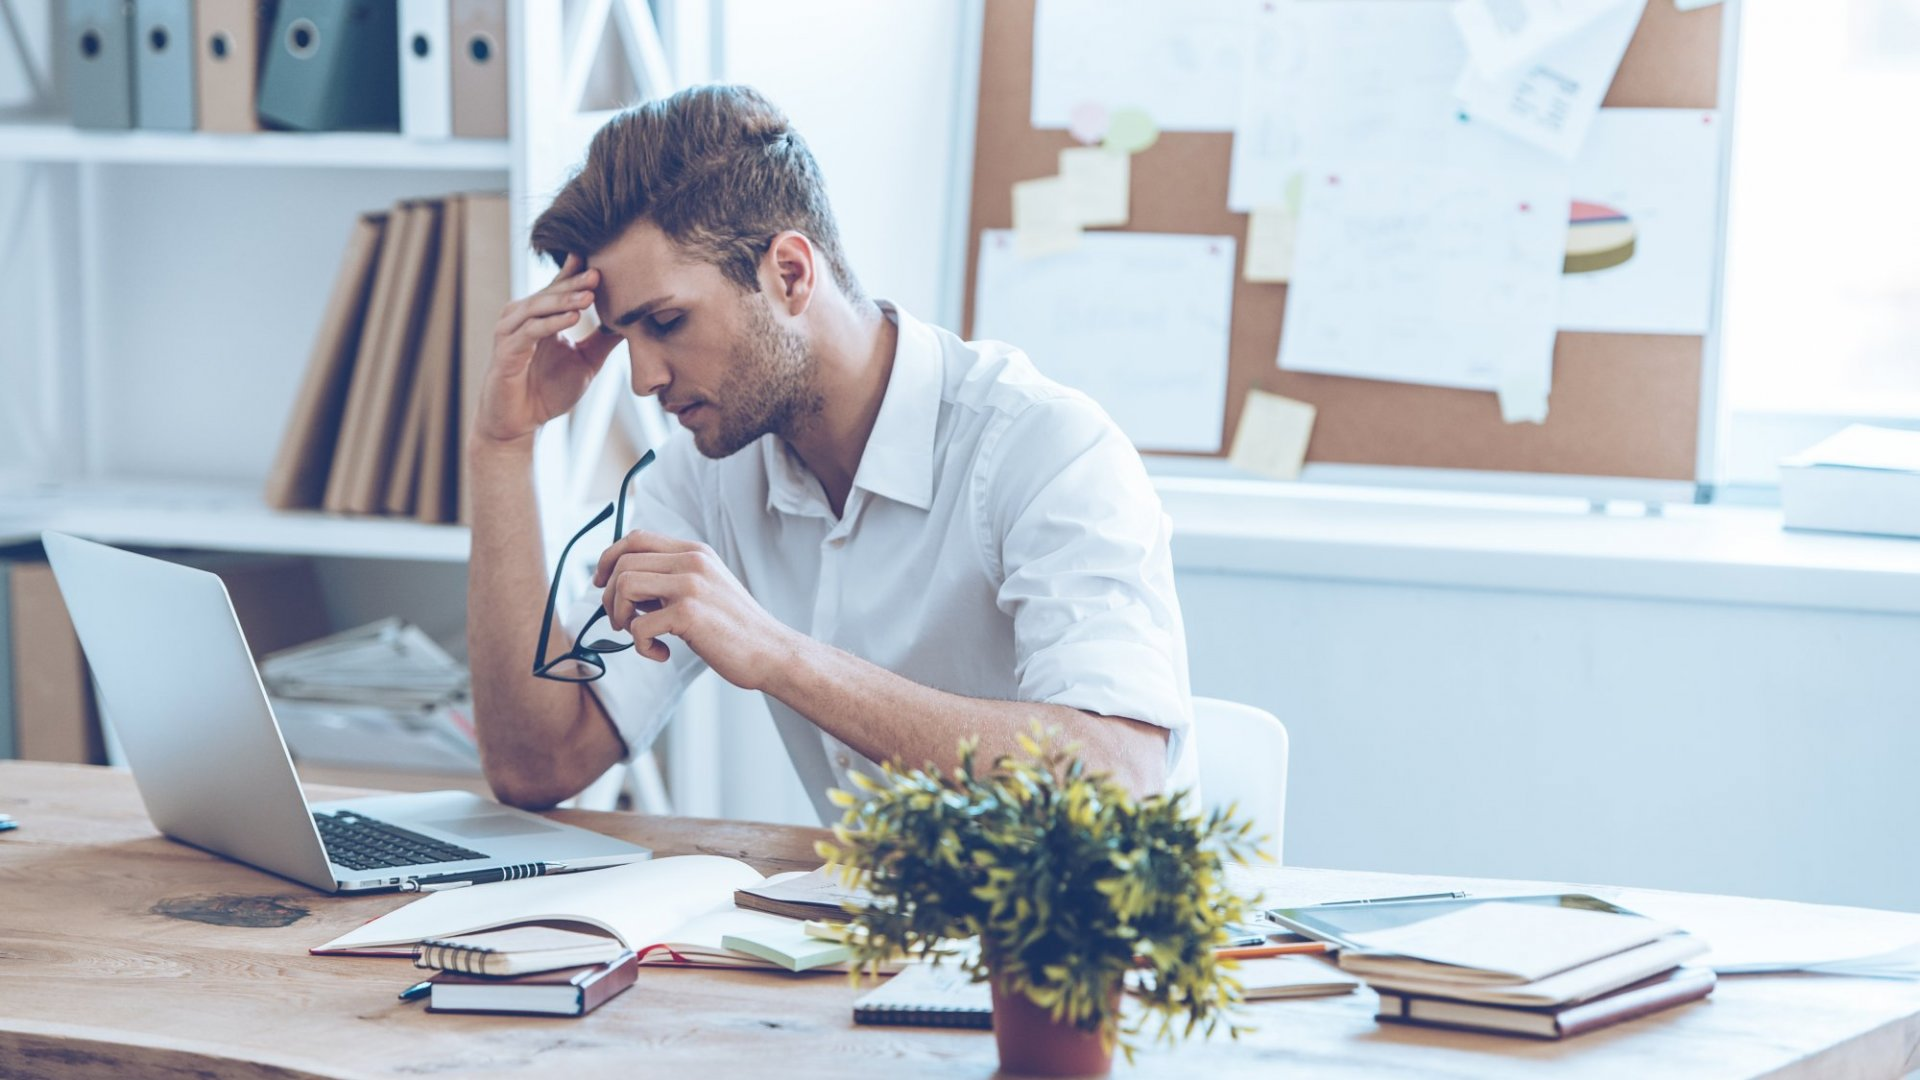 Feeling Decision Fatigue? Here's How to Overcome It to Increase Your Willpower Right Now